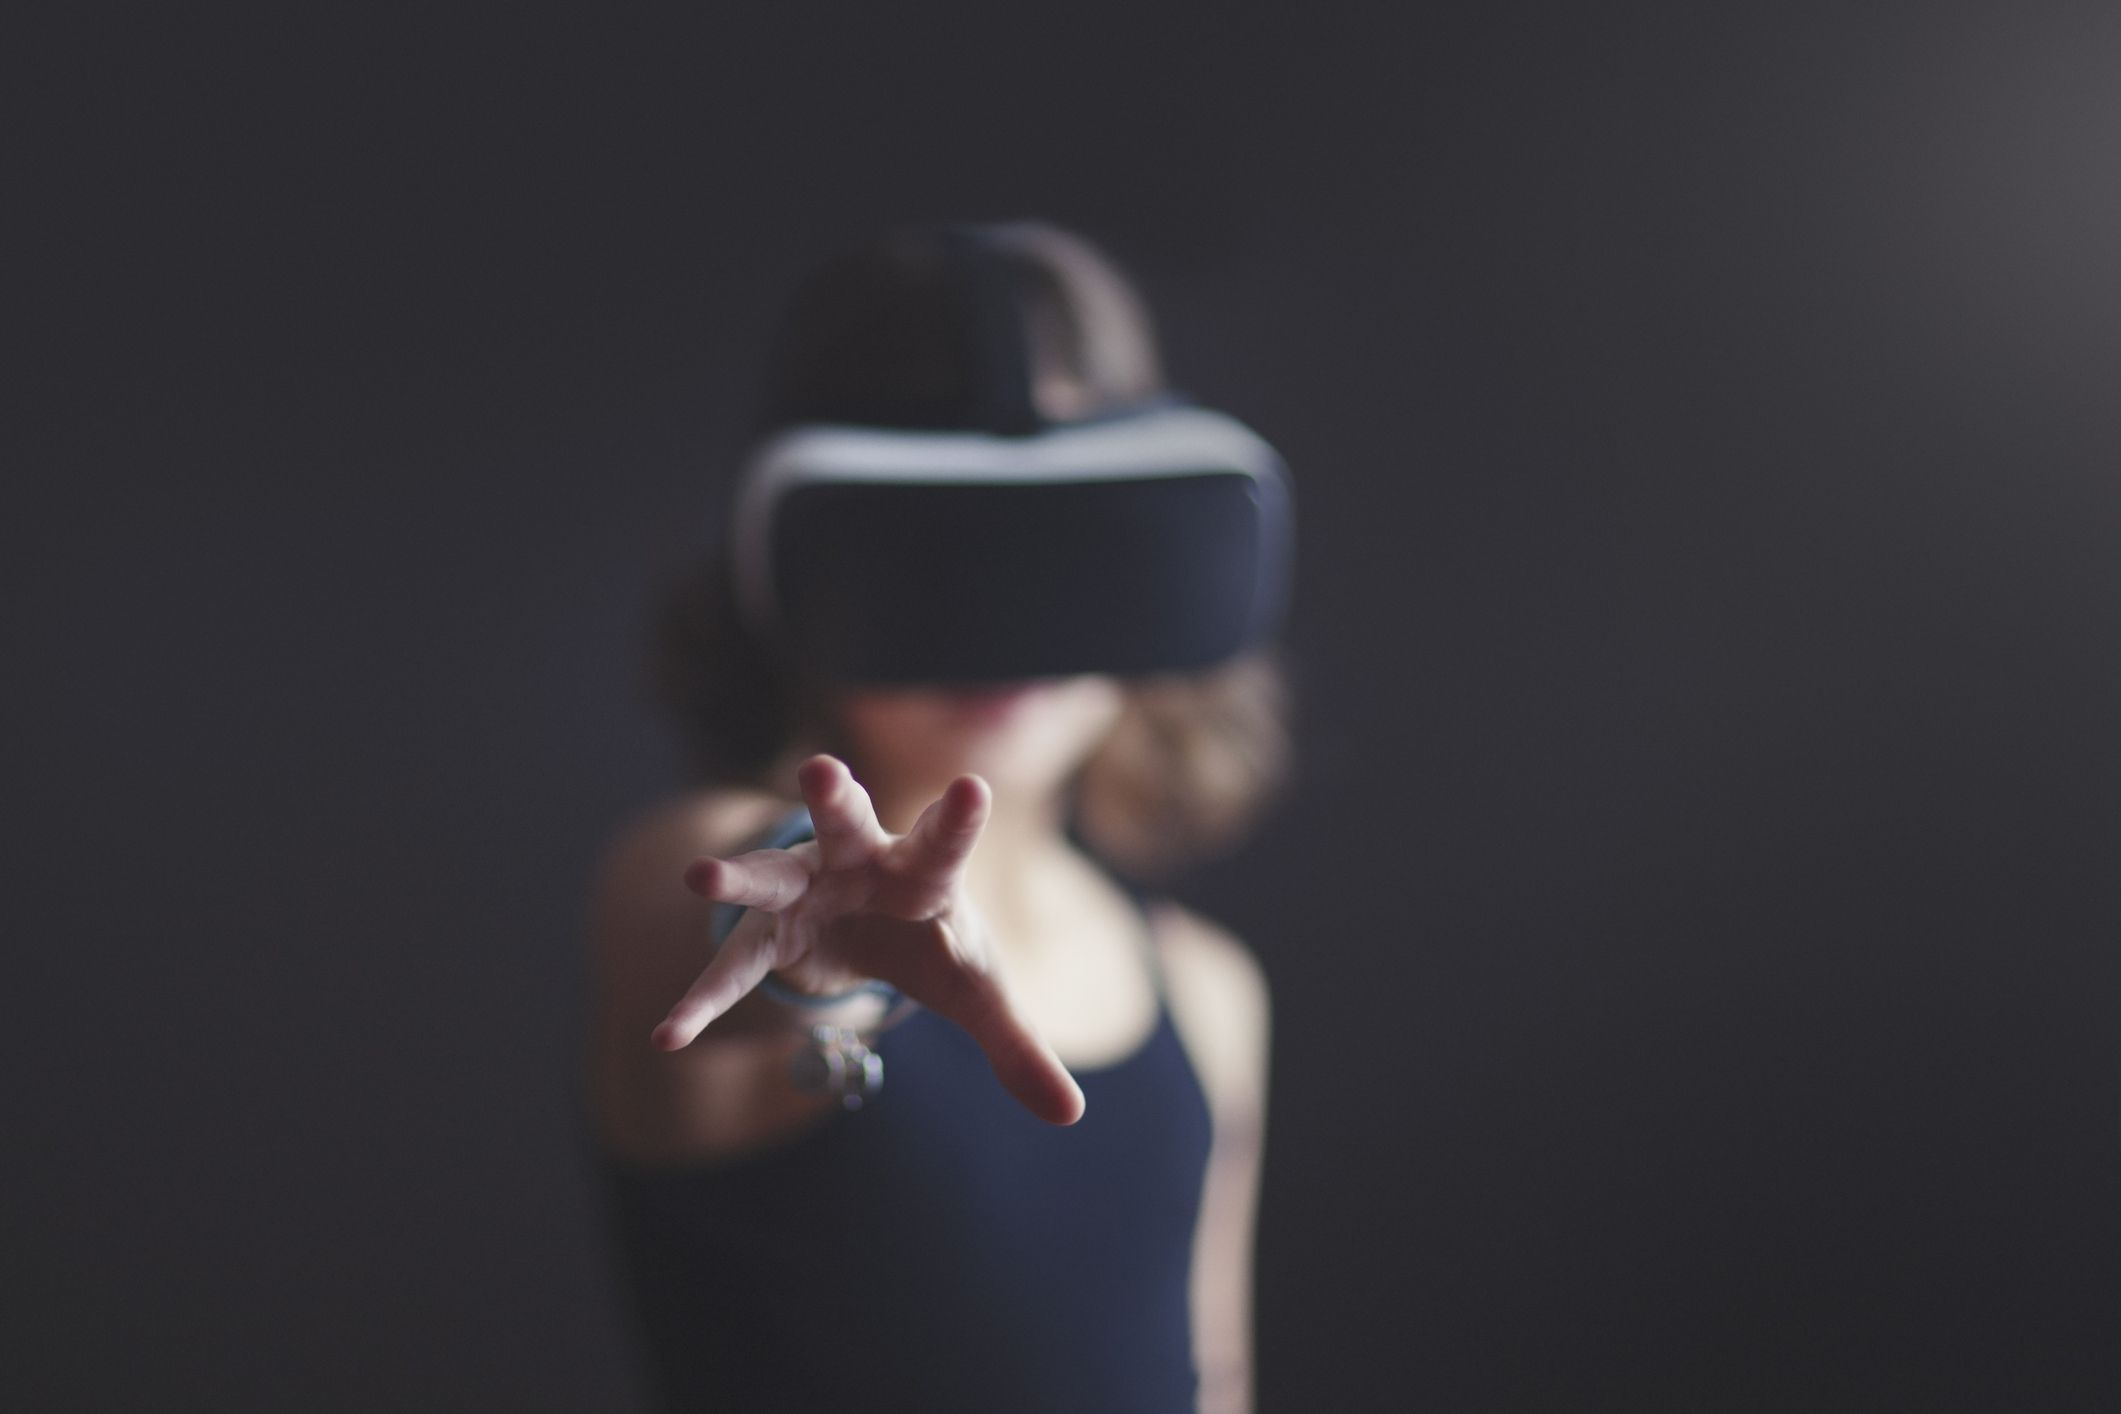 Someone wearing a VR headset reaching toward the camera.